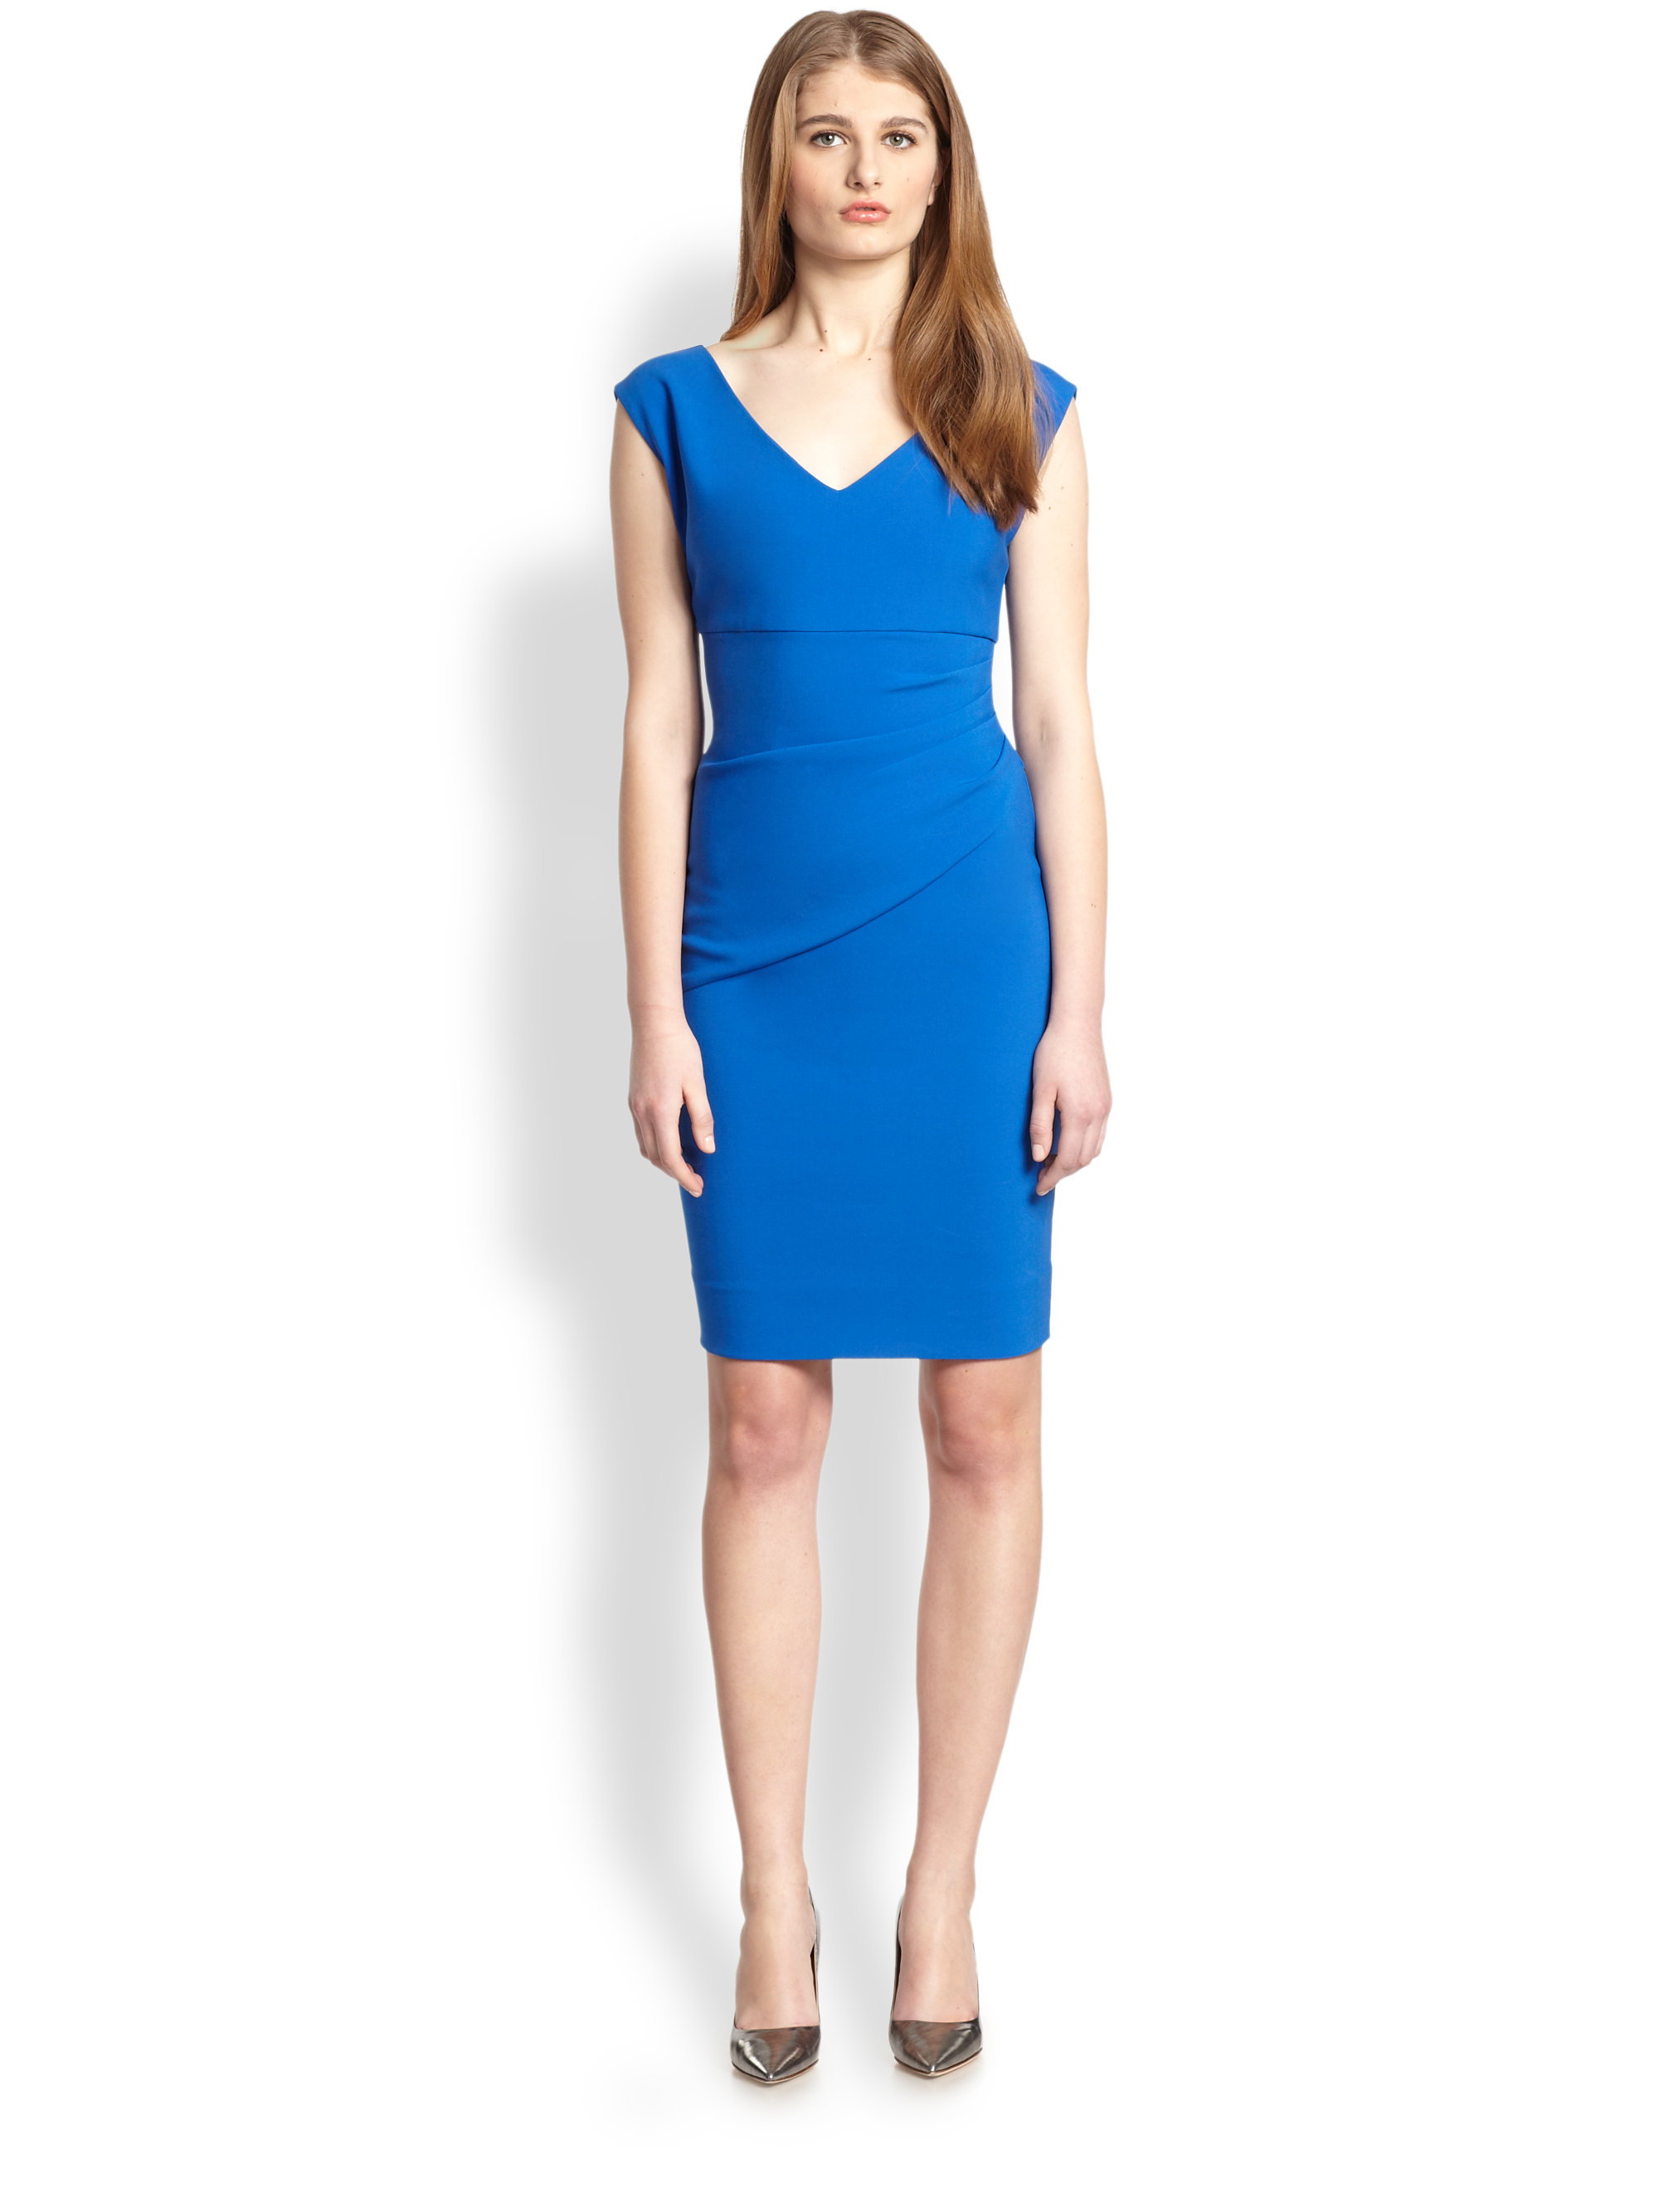 diane von furstenberg bevin ruched knit dress in blue blue diamond lyst. Black Bedroom Furniture Sets. Home Design Ideas